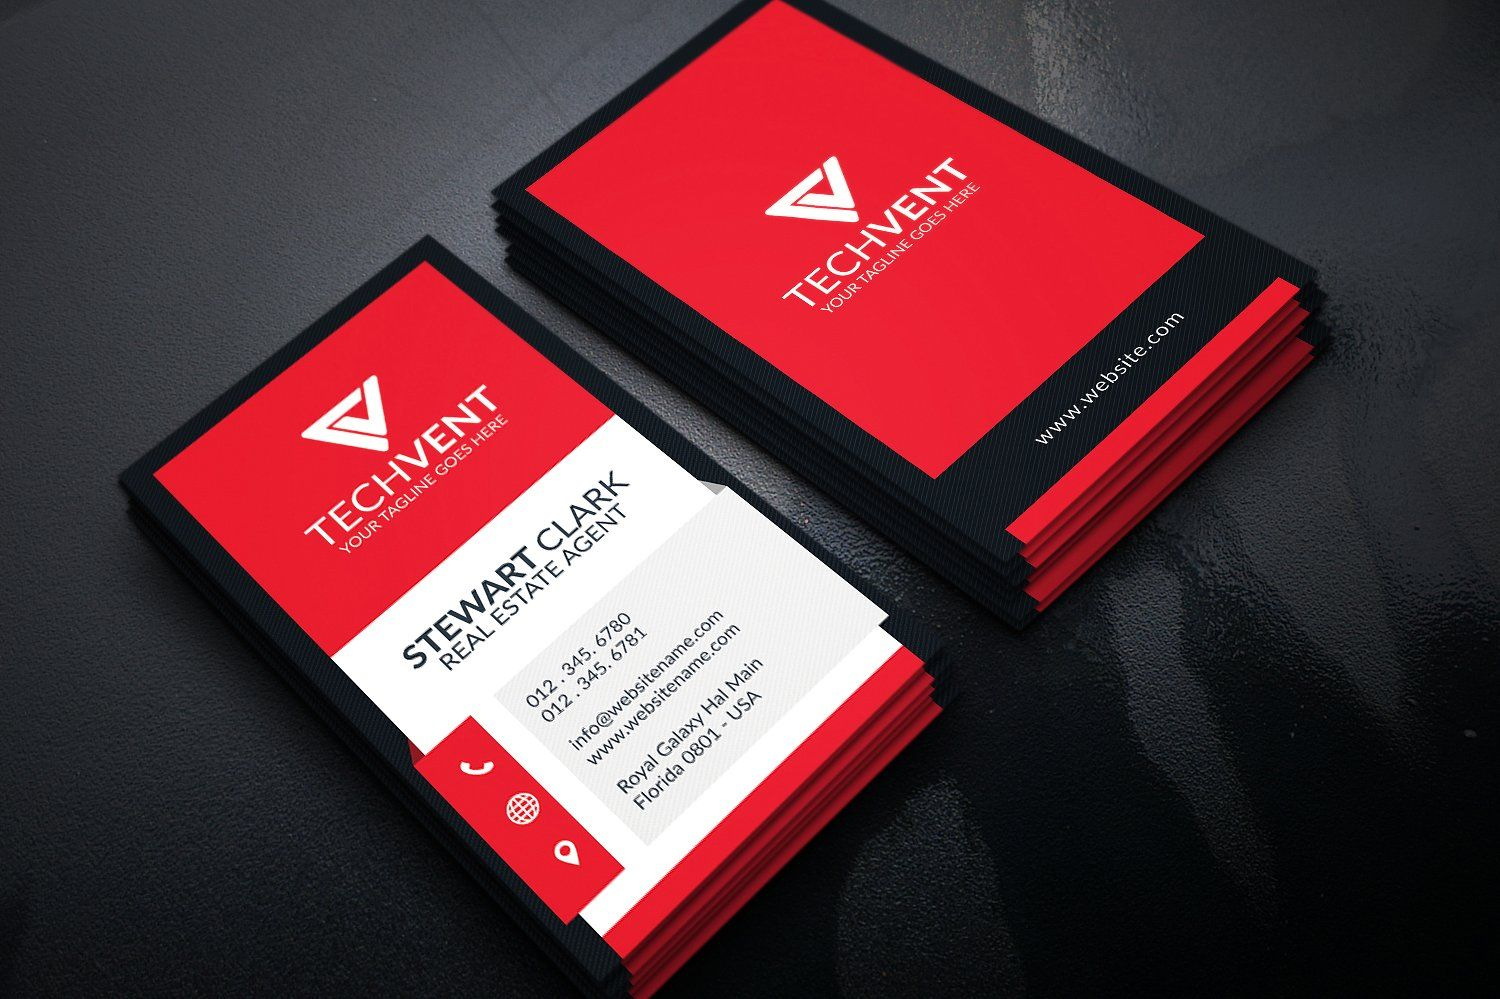 lkl;dsf | Basan | Pinterest | Card templates and Business cards